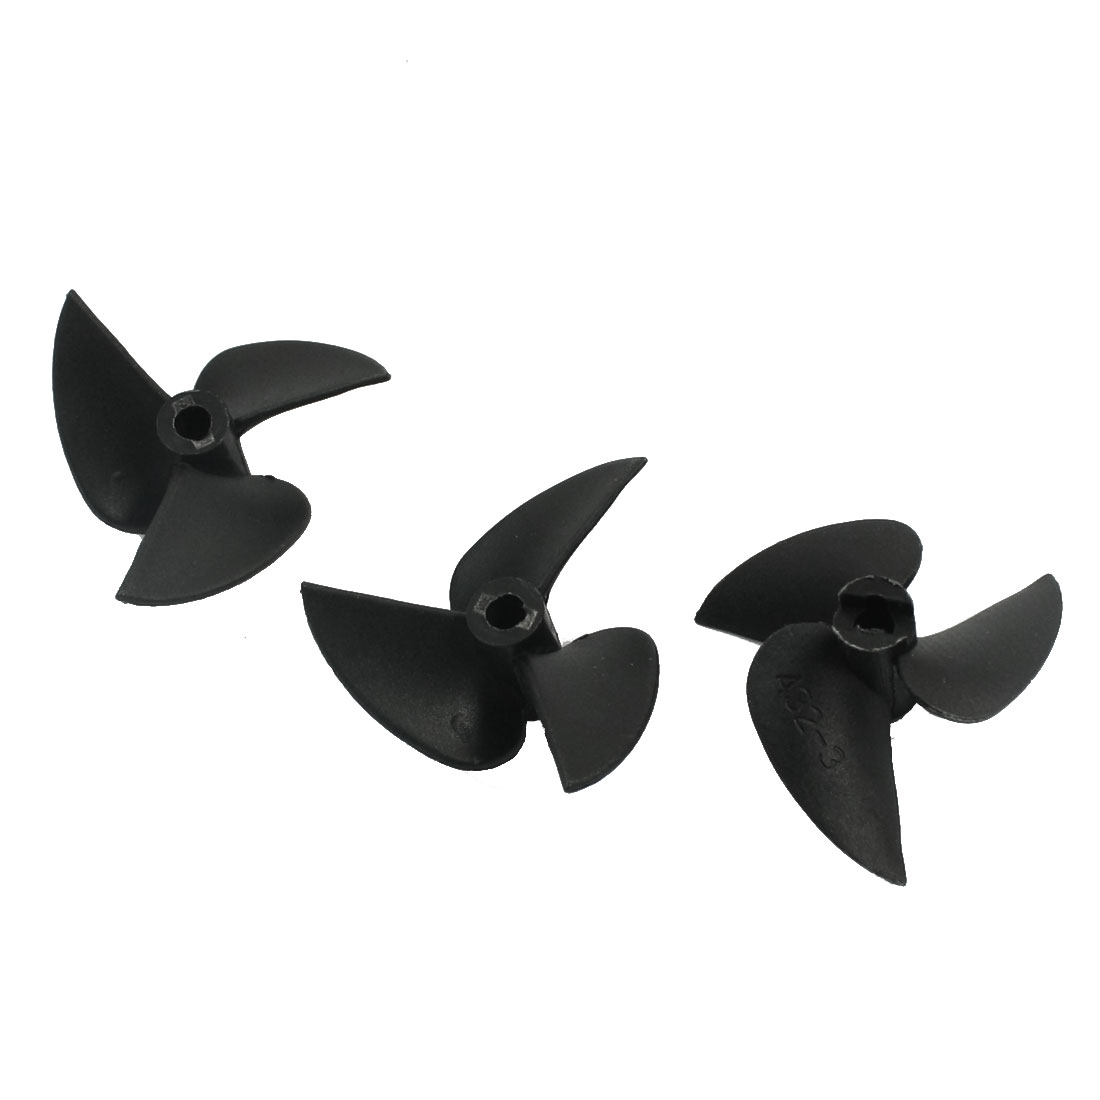 "3Pcs 32mm Dia P/D 1.4 Black Plastic 3 Vane s CW Positive Rotating Propeller Prop 3214 for 1/8"" Shaft RC Boat Ship Model"